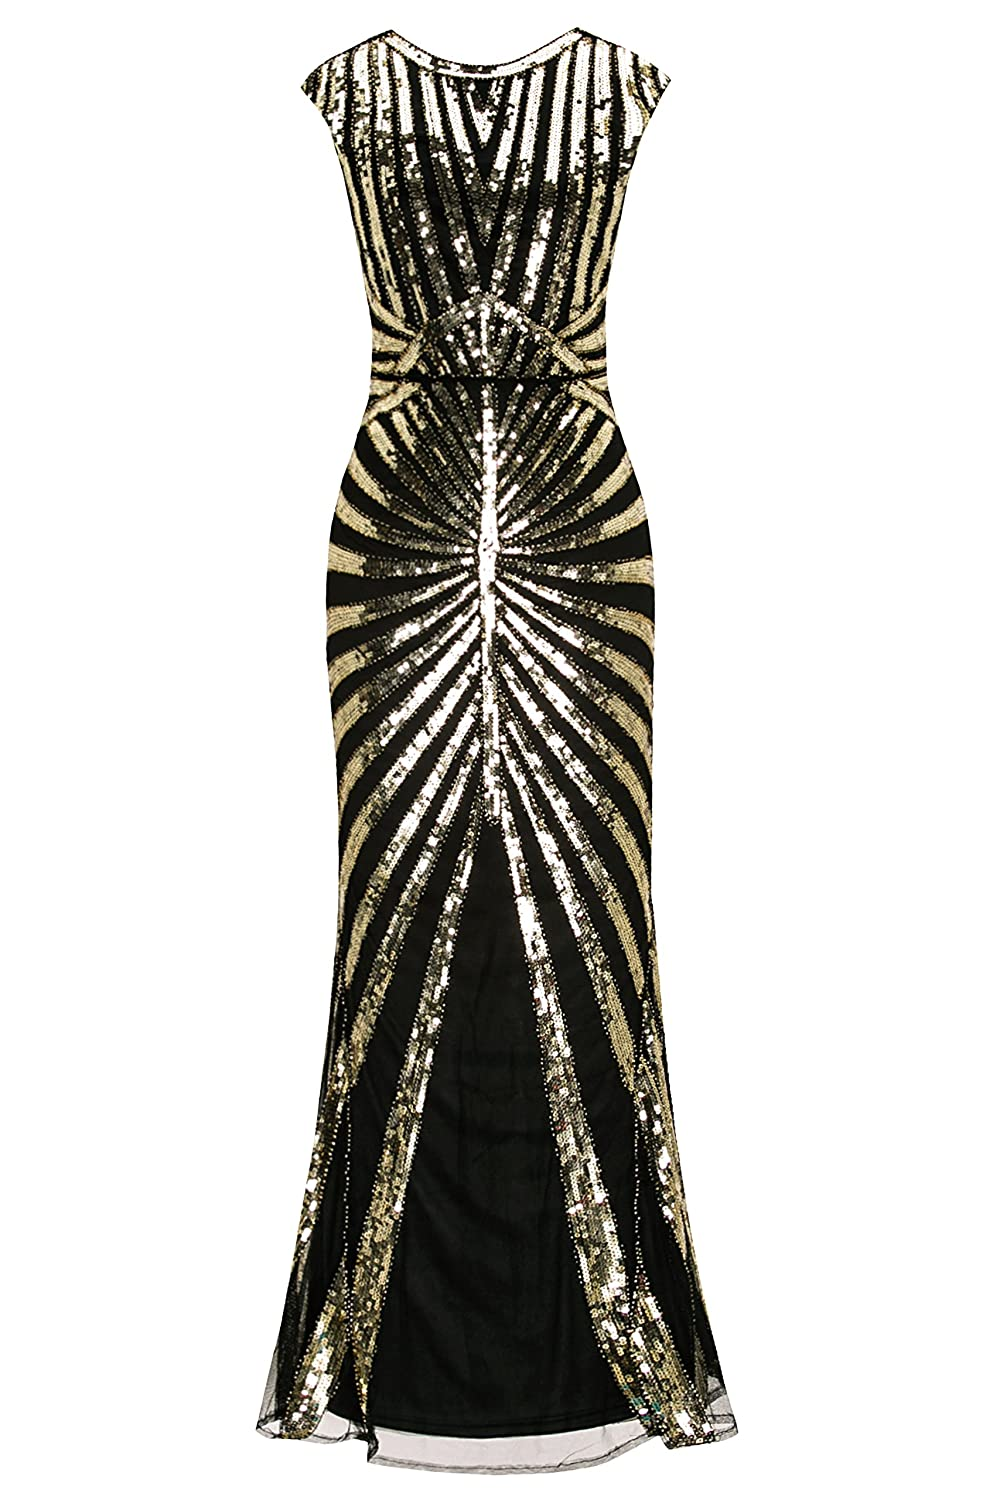 Flapper Costumes, Flapper Girl Costume Metme Womens Evening Dress 1920s Sequin Mermaid Gatsby Formal Long Flapper Gown Party $40.99 AT vintagedancer.com